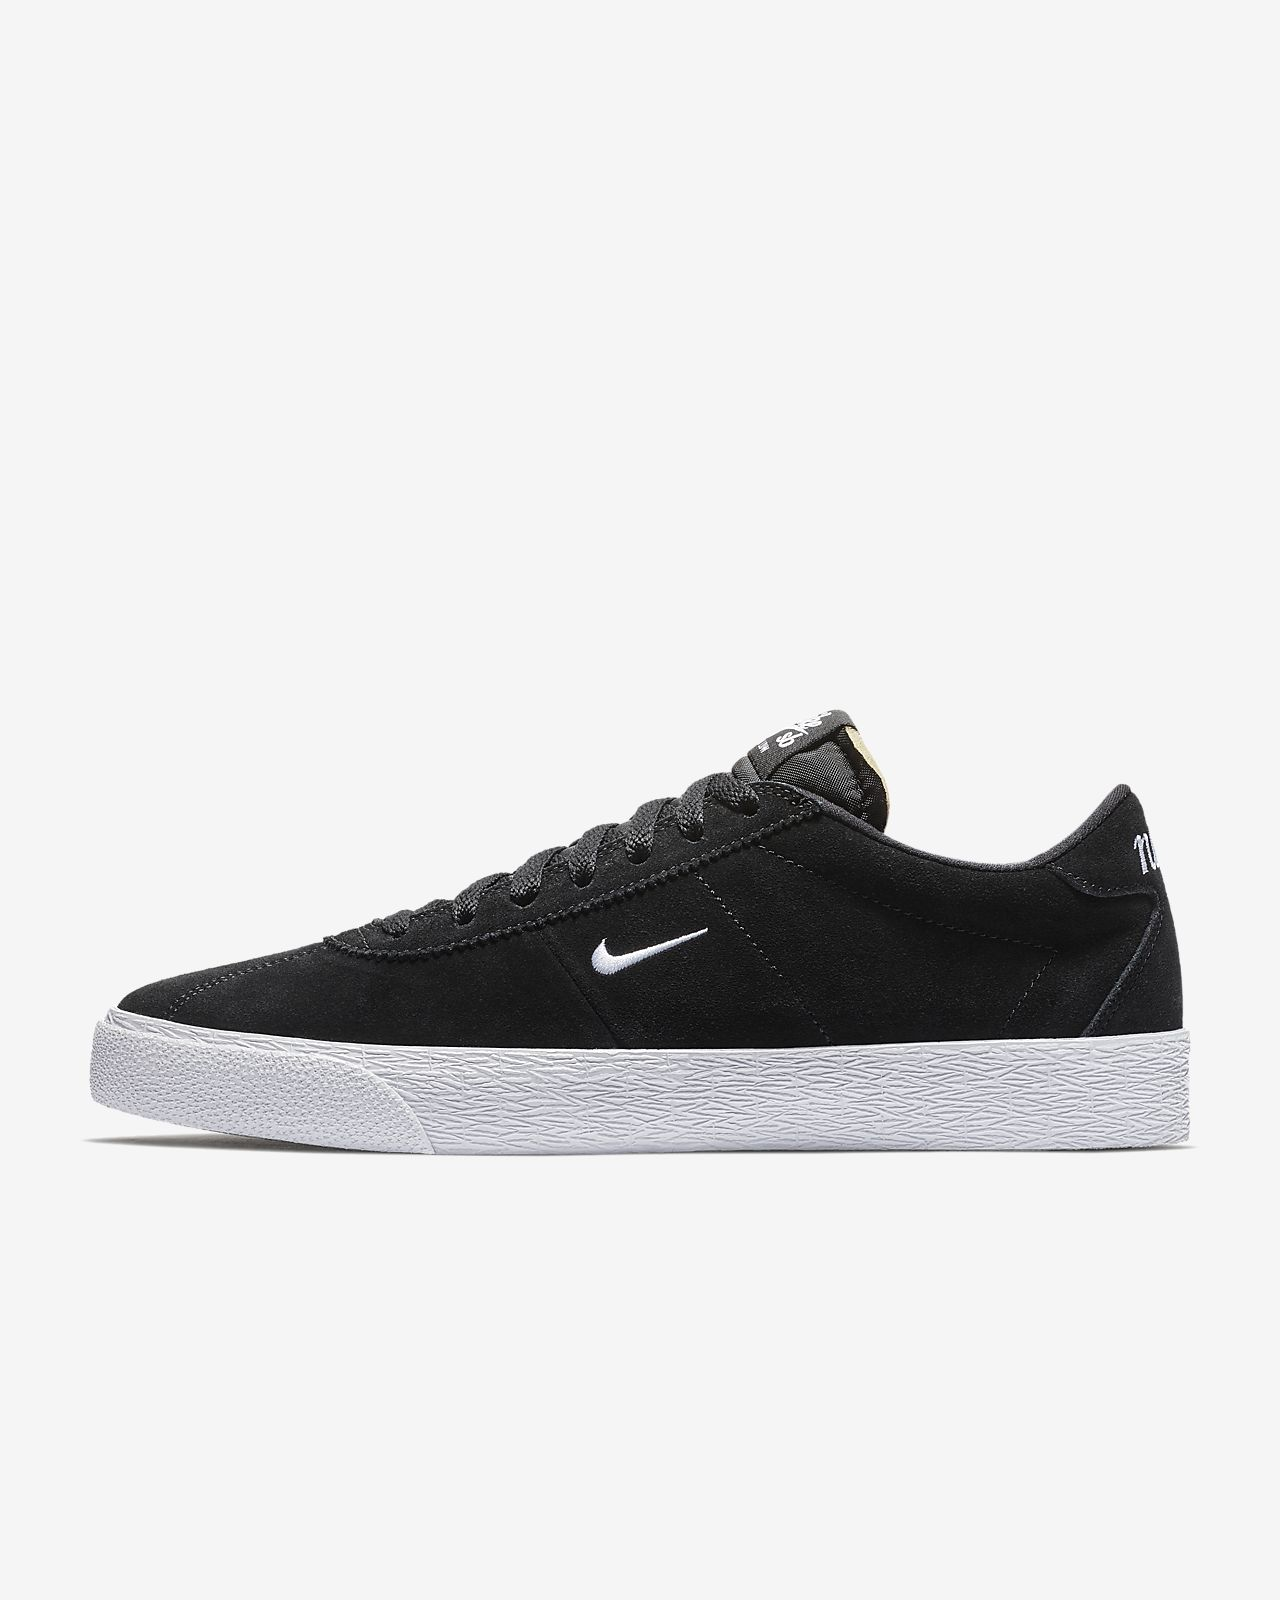 new product 9e043 945a9 Low Resolution Nike SB Zoom Bruin Skate Shoe Nike SB Zoom Bruin Skate Shoe